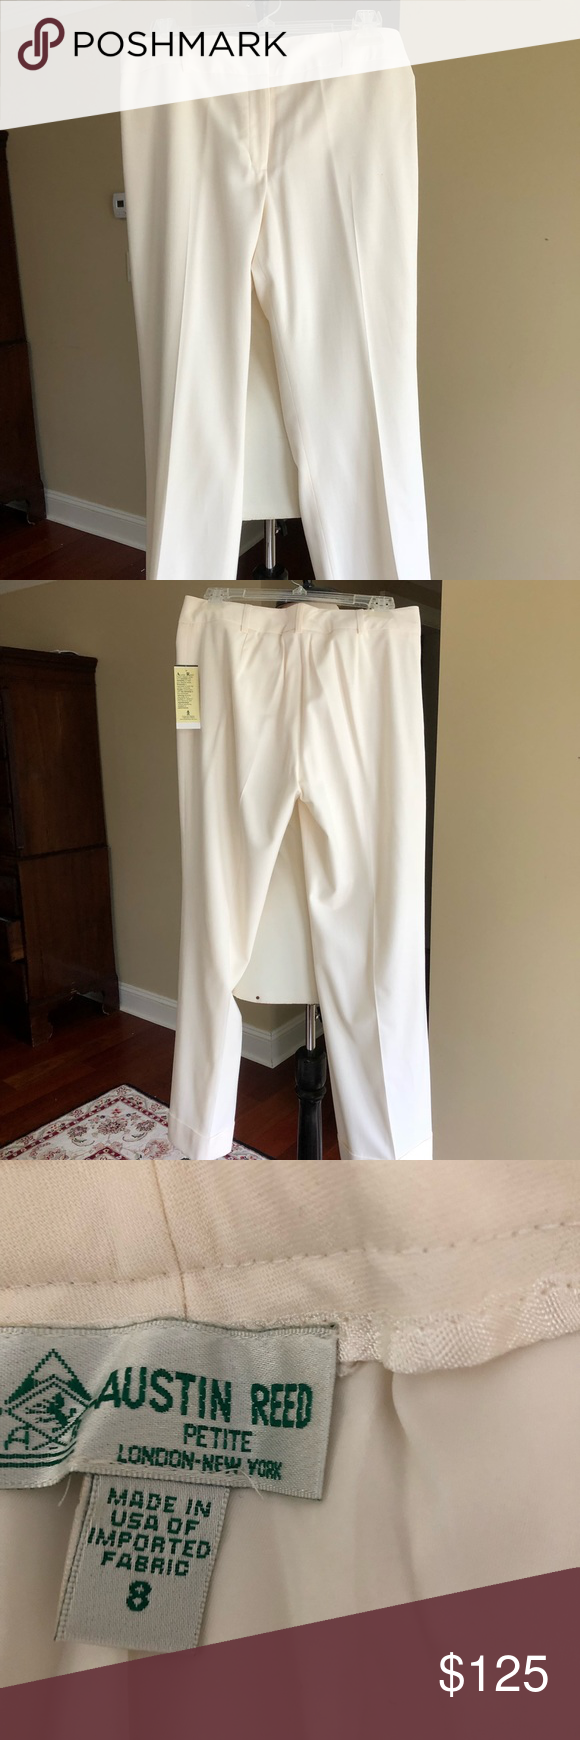 Antique White Austin Reed Trousers Clothes Design Austin Reed Fashion Design